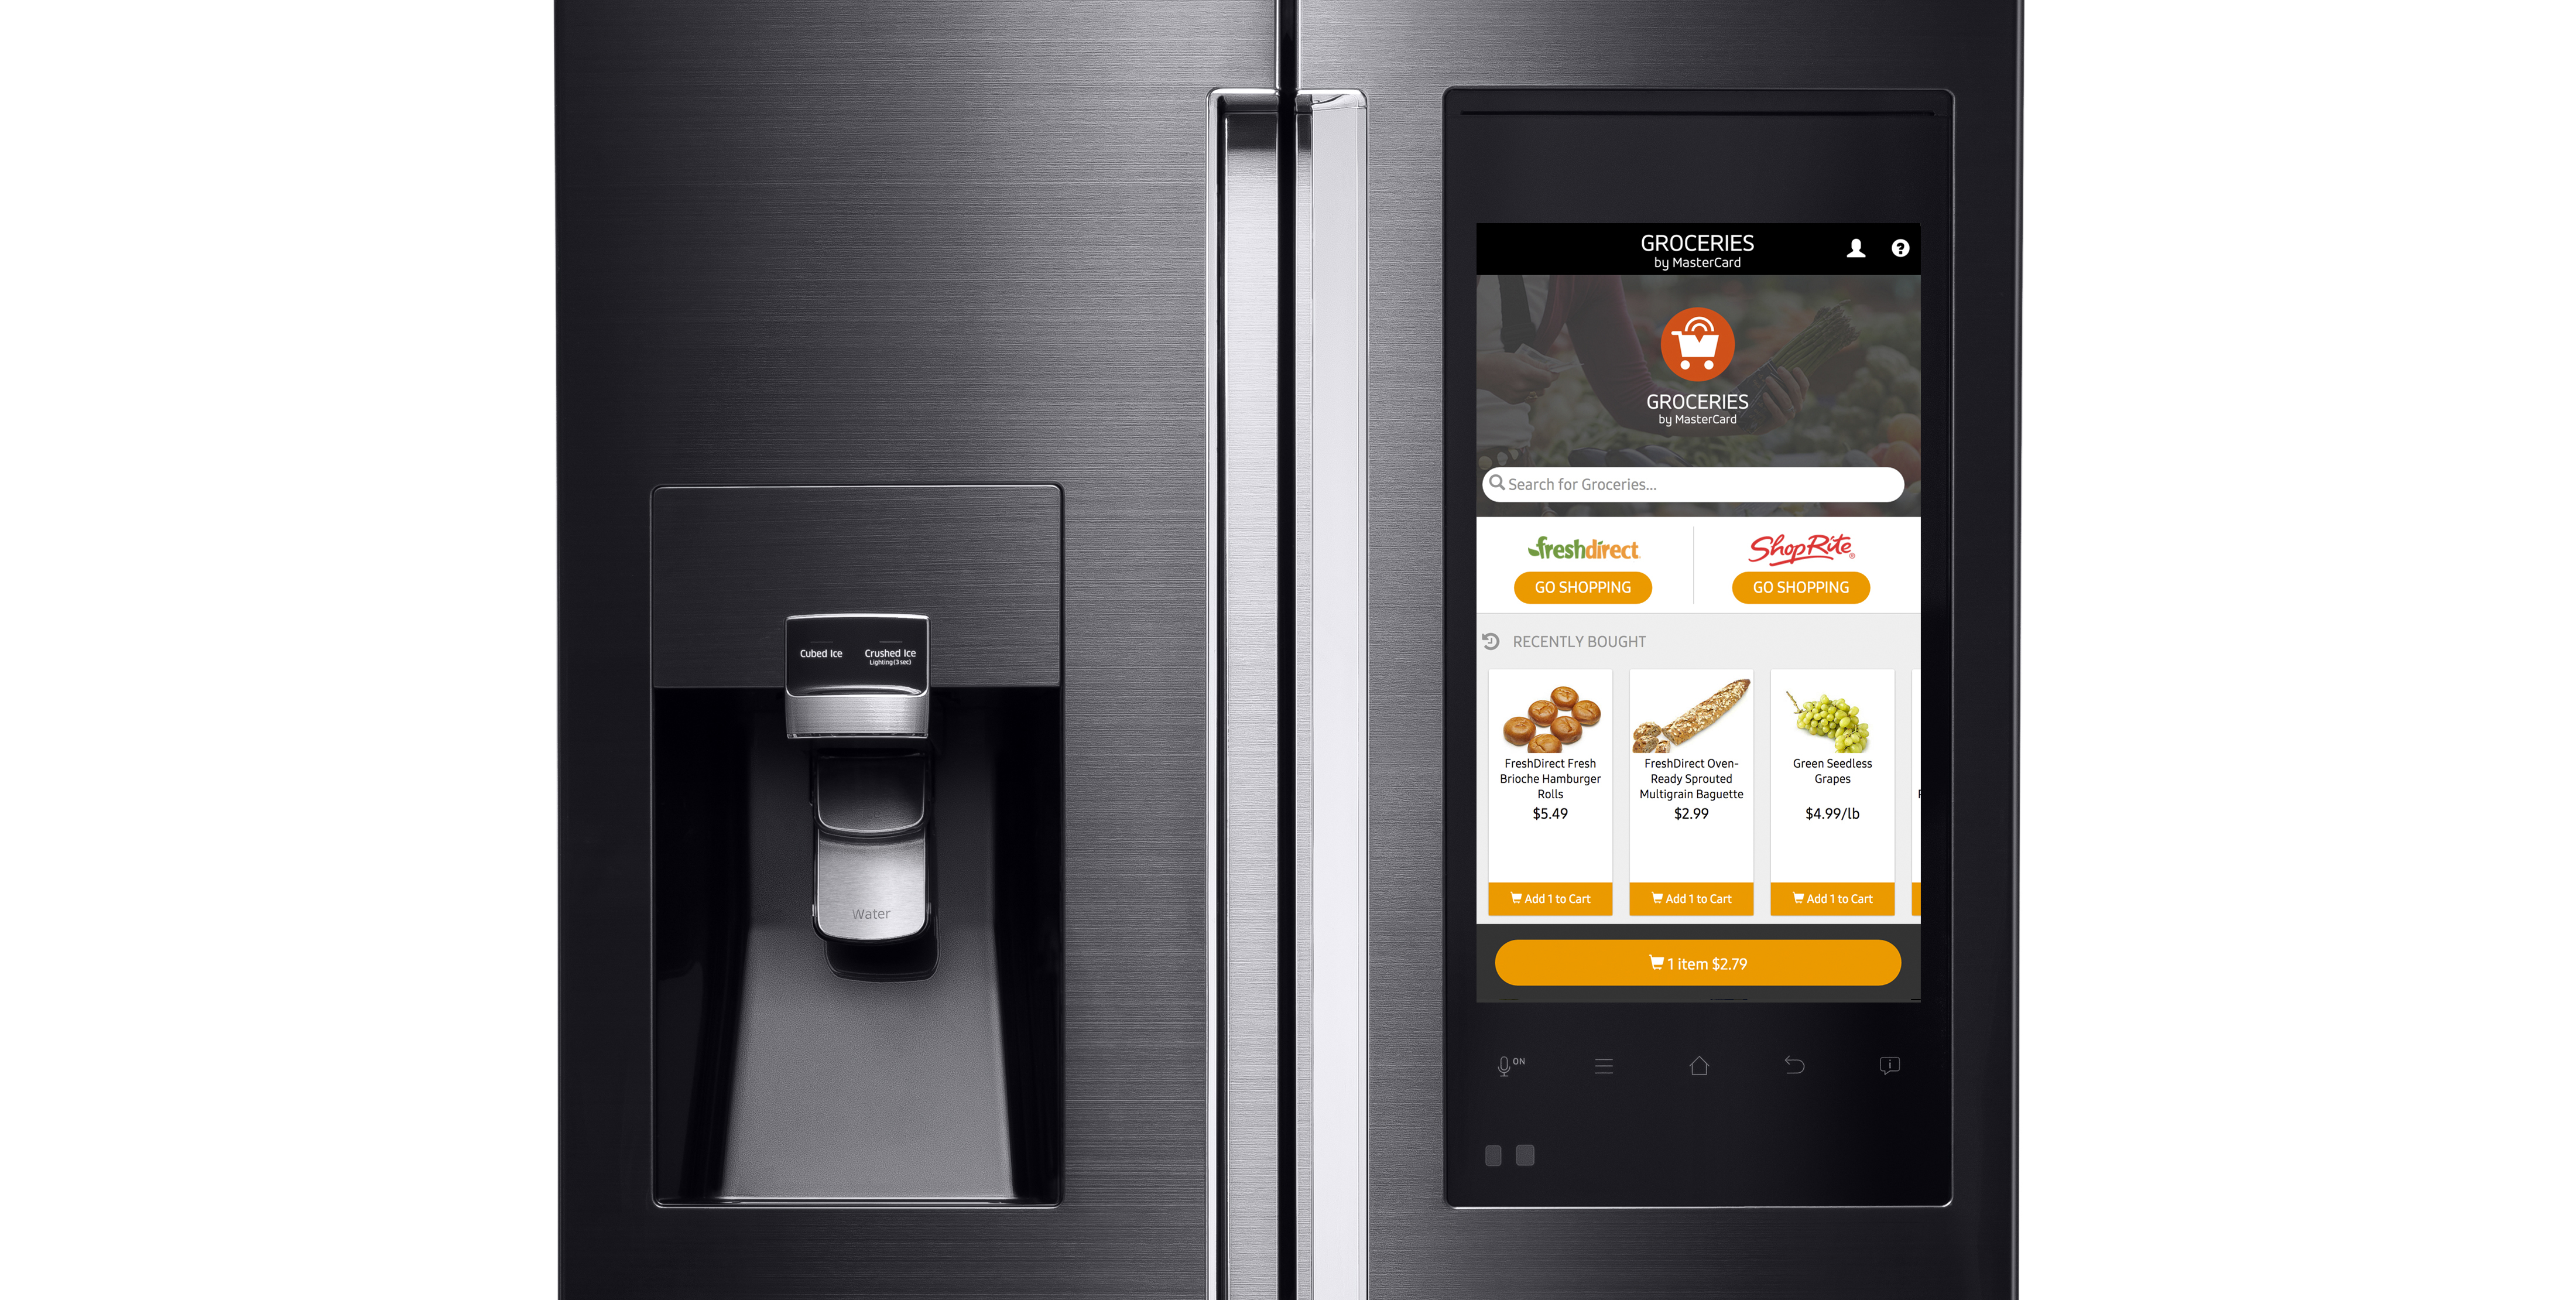 MasterCard introduces Groceries by MasterCard, a new app which enables consumers to order groceries directly from Samsung's new Family Hub refrigerator